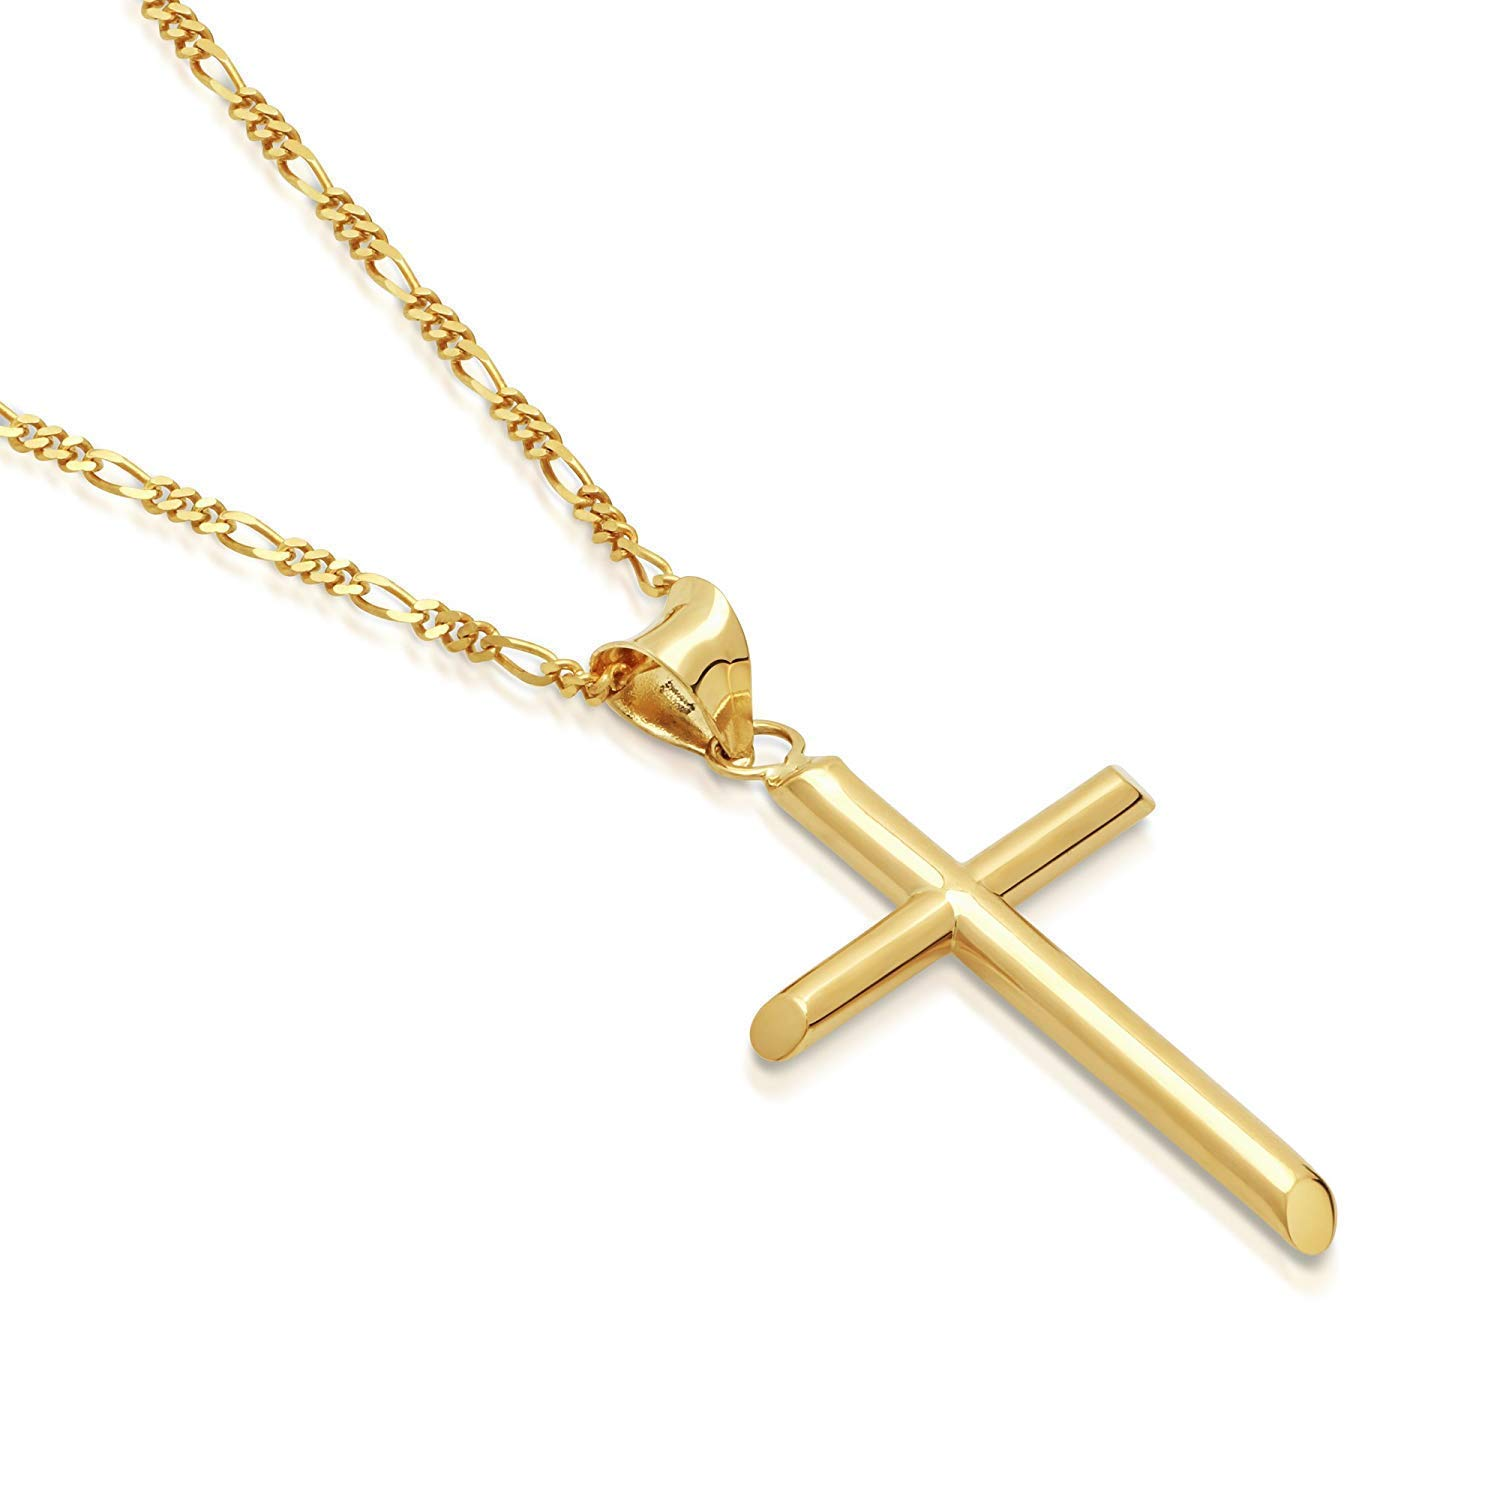 "DAYA Empire 14K Gold Figaro Chain Style Cross Pendant Necklace Solid Clasp for Men,Women,Teens,Children Thin for Charms Choose Length 18"" or 22'' Miami Cuban Link Diamond Cut (20) by DAYA Empire (Image #1)"